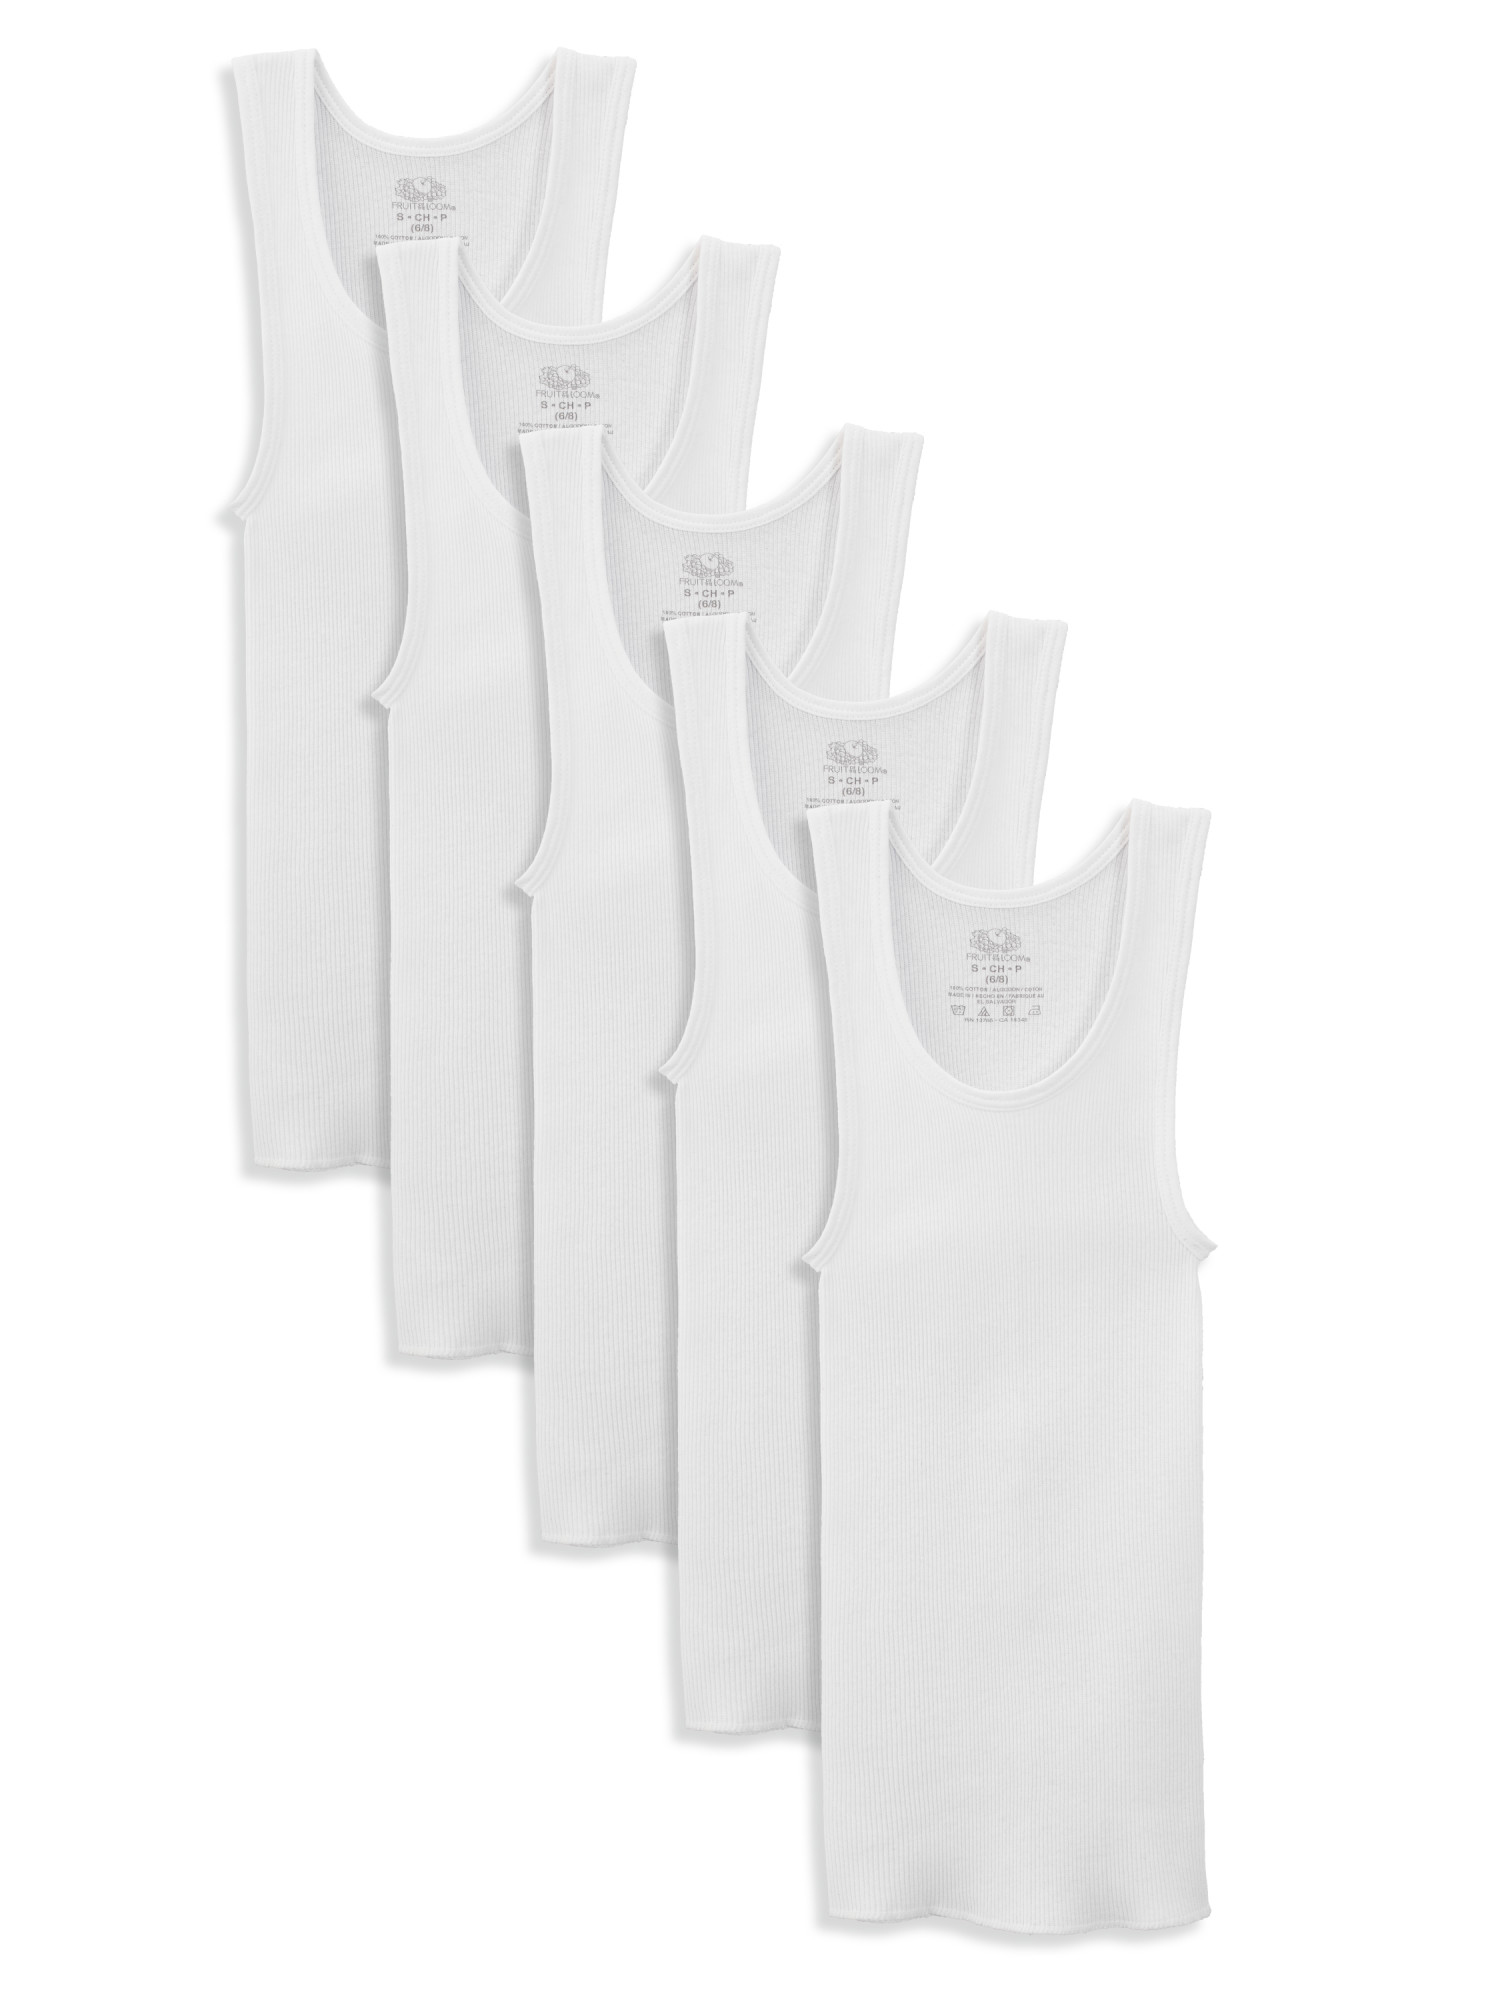 White Tank A-Shirts, 5 Pack (Little Boys & Big Boys)